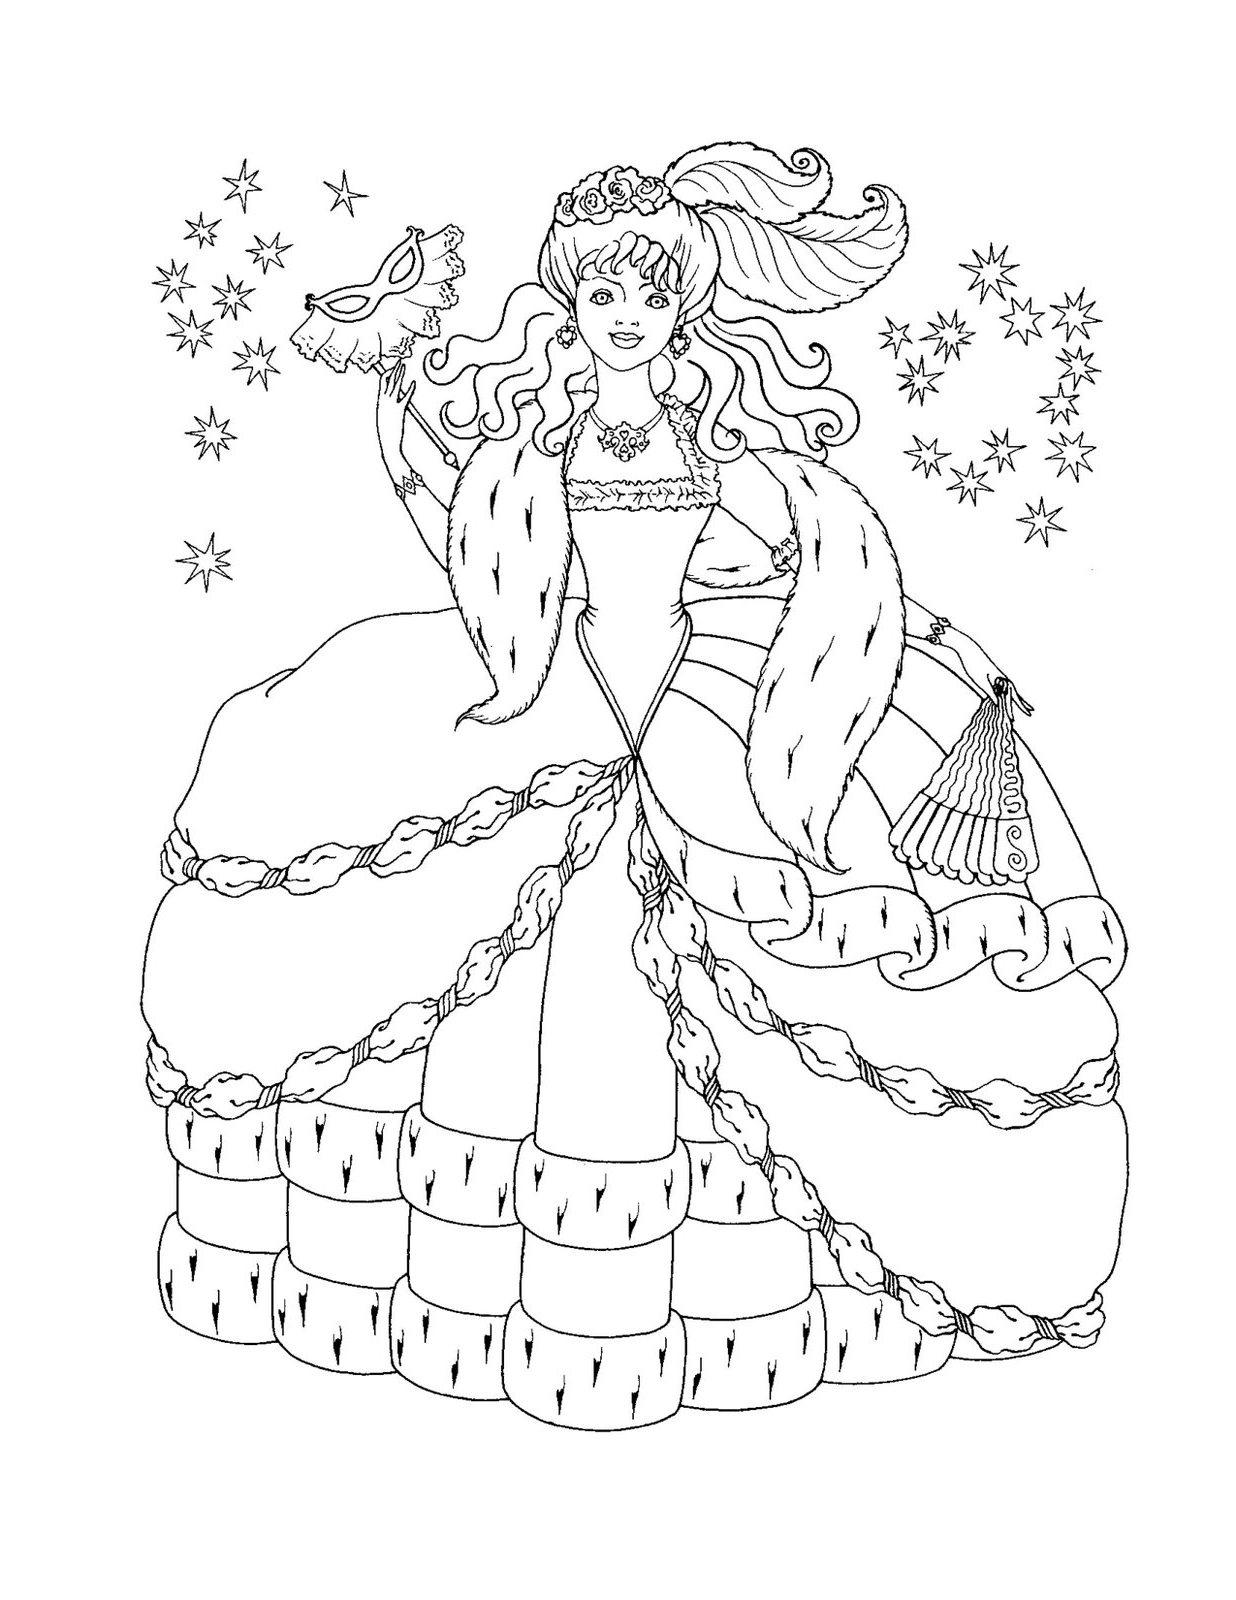 Free Printable Disney Princess Coloring Pages For Kids Coloring Pages Of Disney Princess Printable